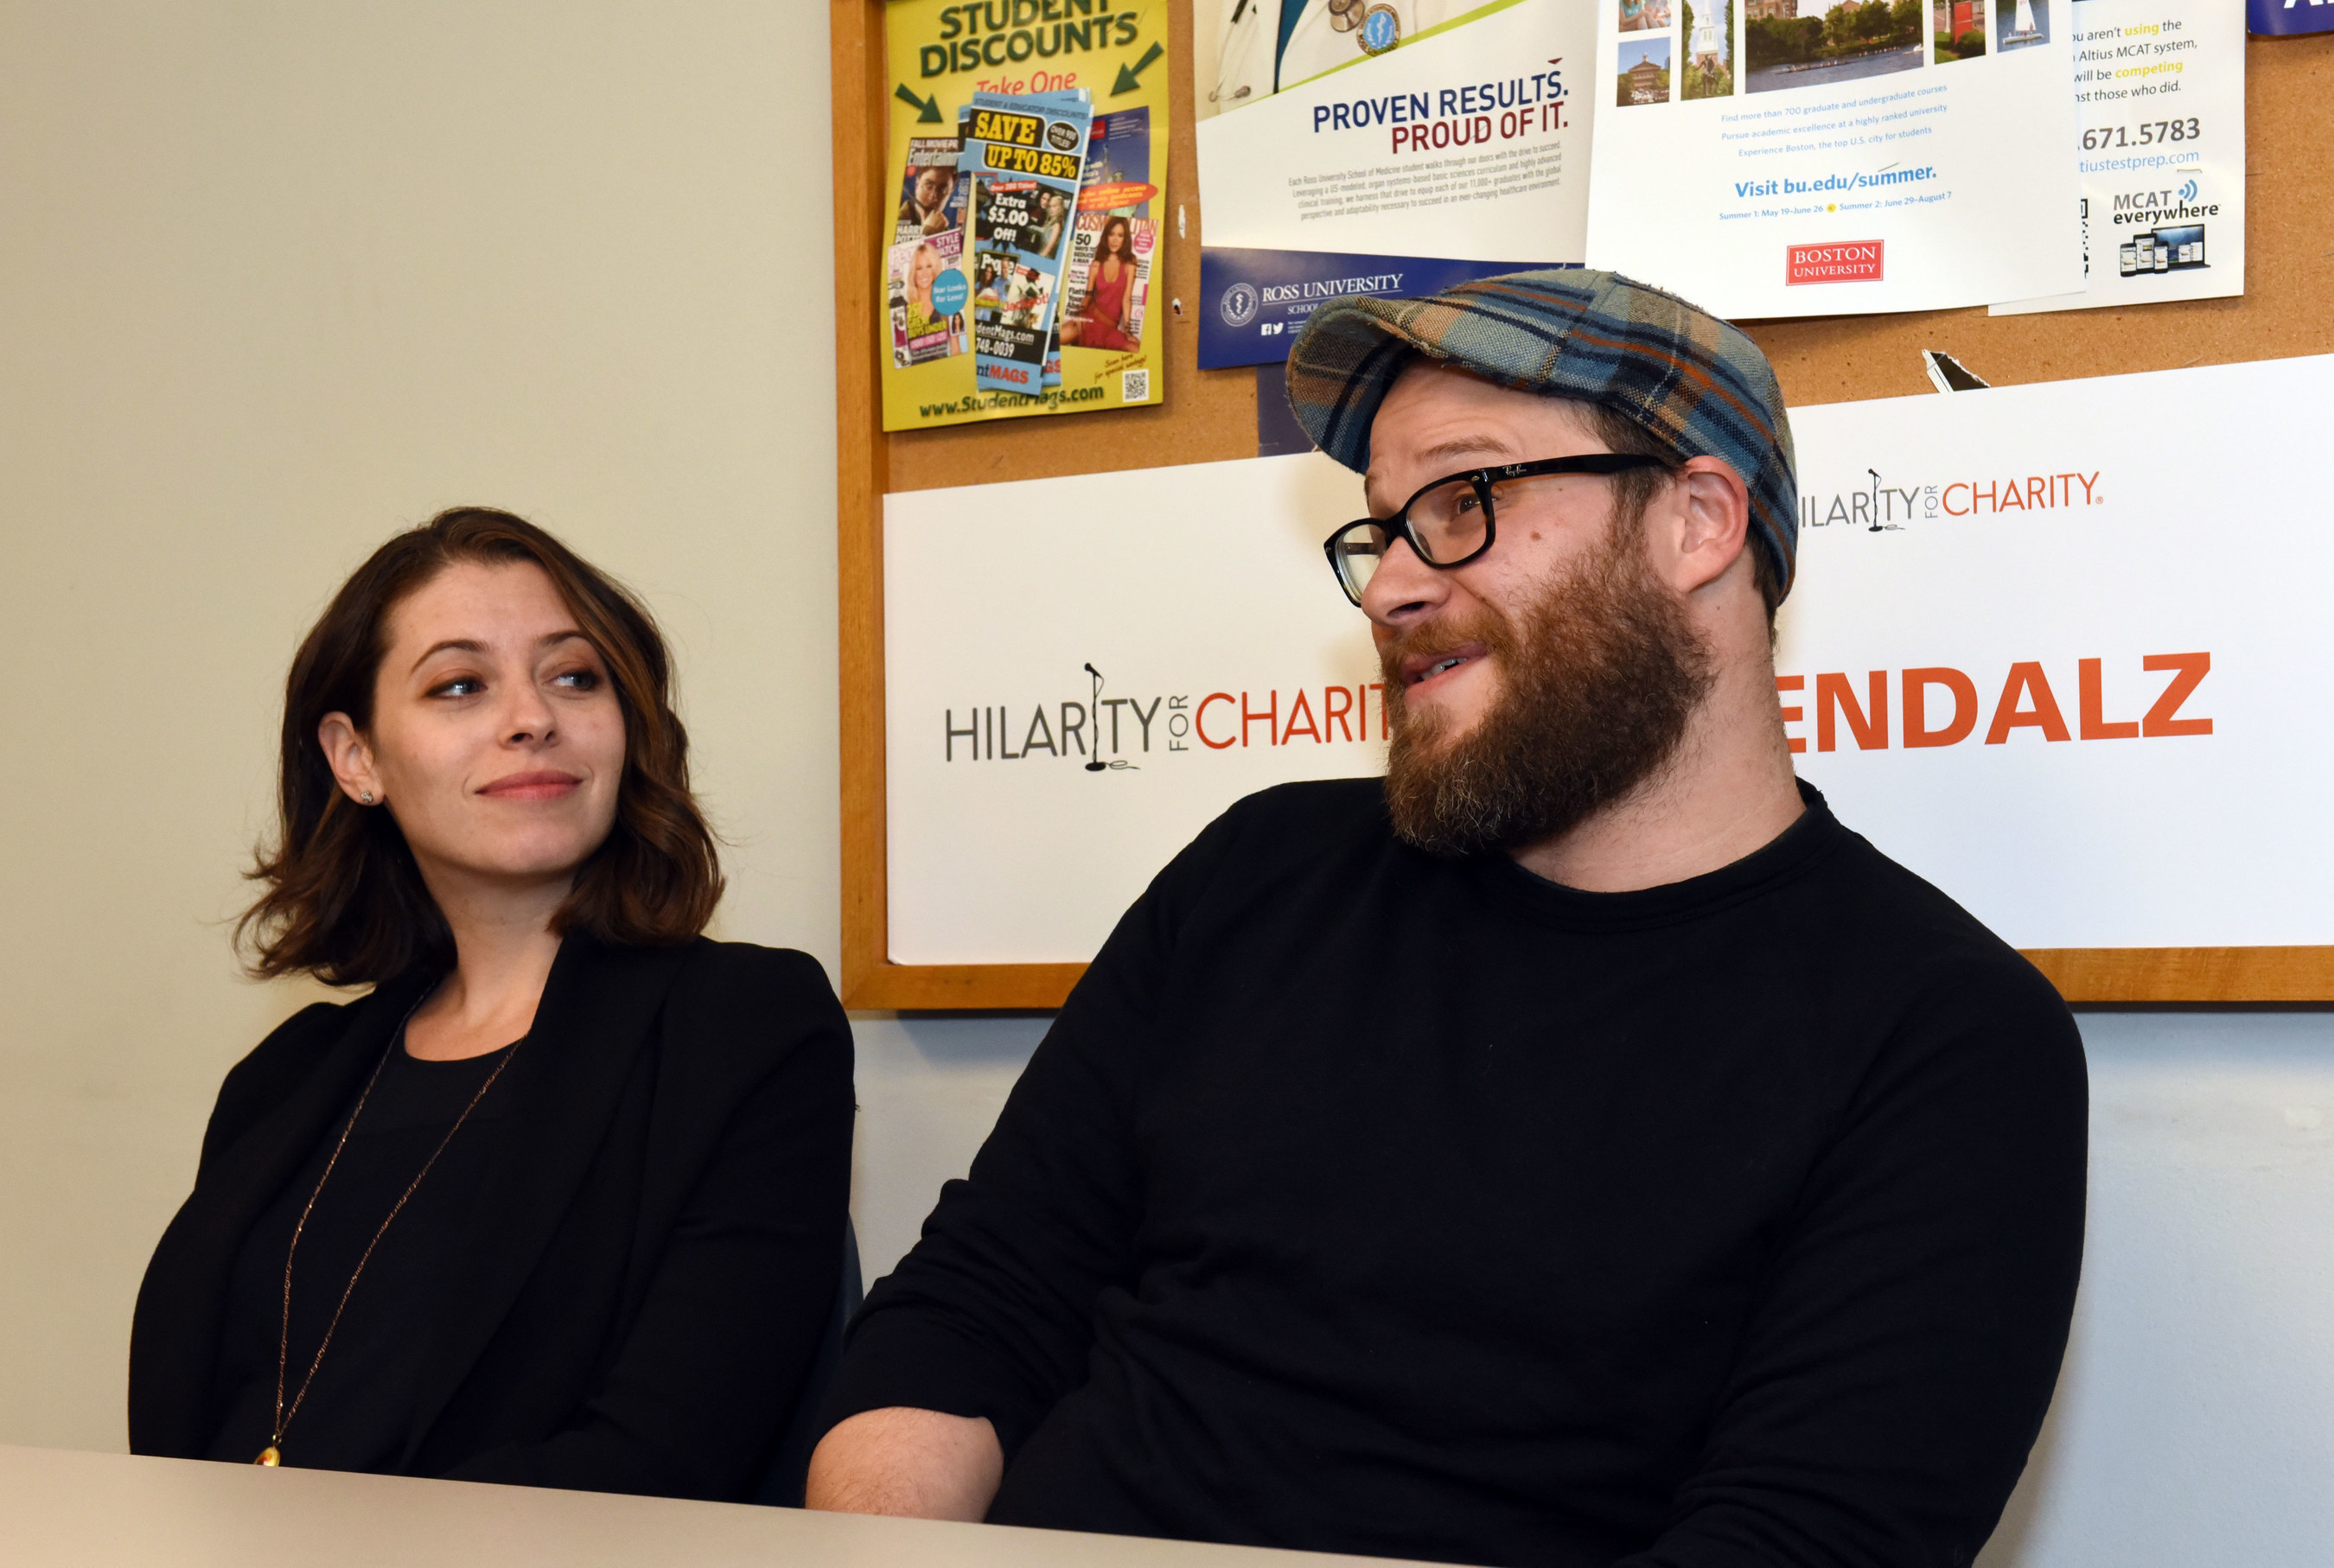 Lauren Miller Rogen and husband Seth Rogen share their Alzheimer's story with media during the Hilarity for Charity U event at the University of Vermont in Burlington, Vt. on Saturday, April 25, 2015. UVM's Pi Kappa Alpha fraternity and Alpha Chi Omega sorority this year raised more than $30,000.00 for Hilarity for Charity U, benefiting the Alzheimer's Association. (ALISON REDLICH/AP Images for Hilarity For Charity U)